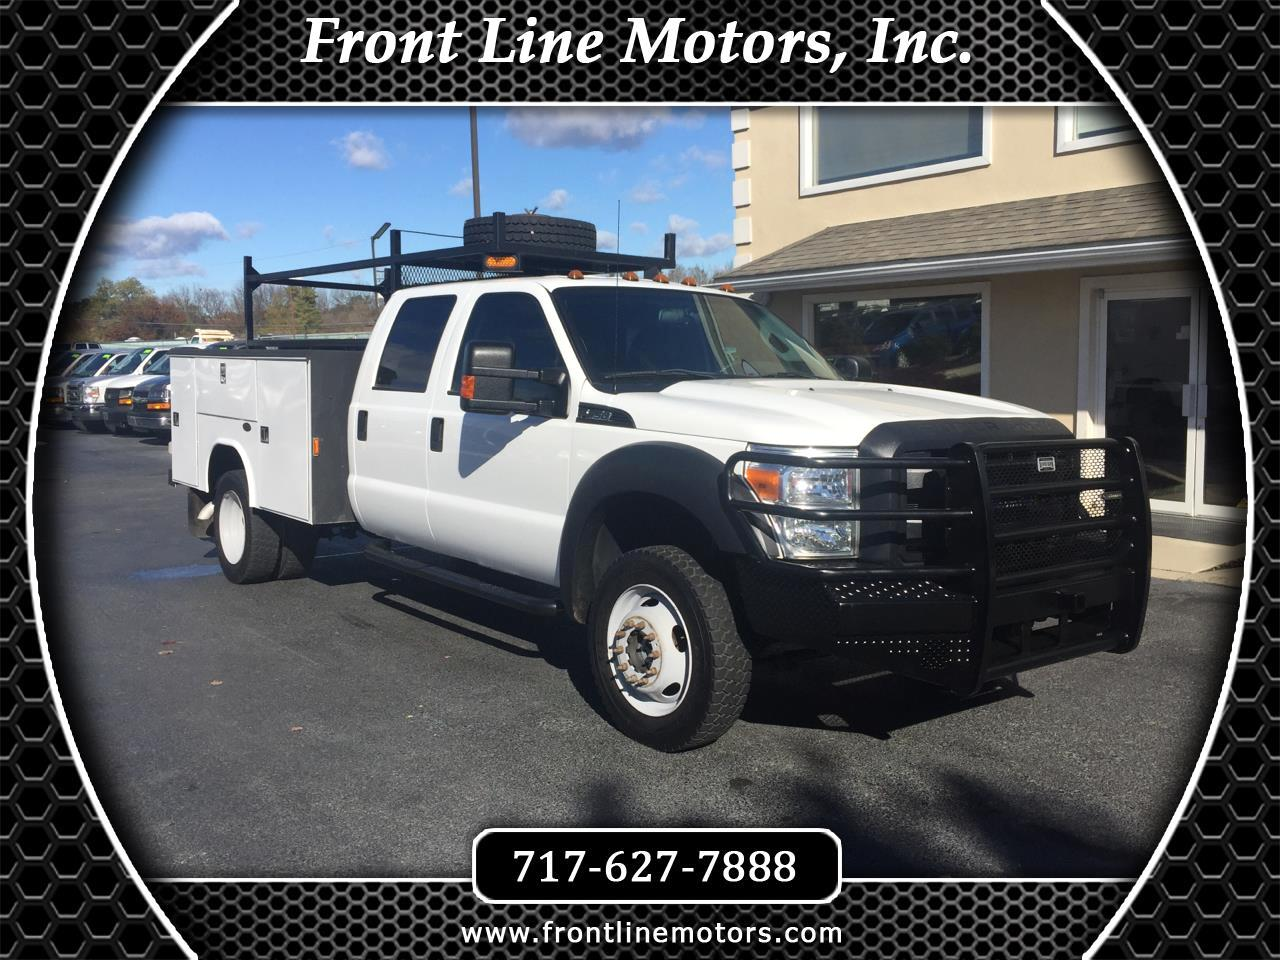 2014 Ford Super Duty F-450 DRW 4WD Crew Cab 176